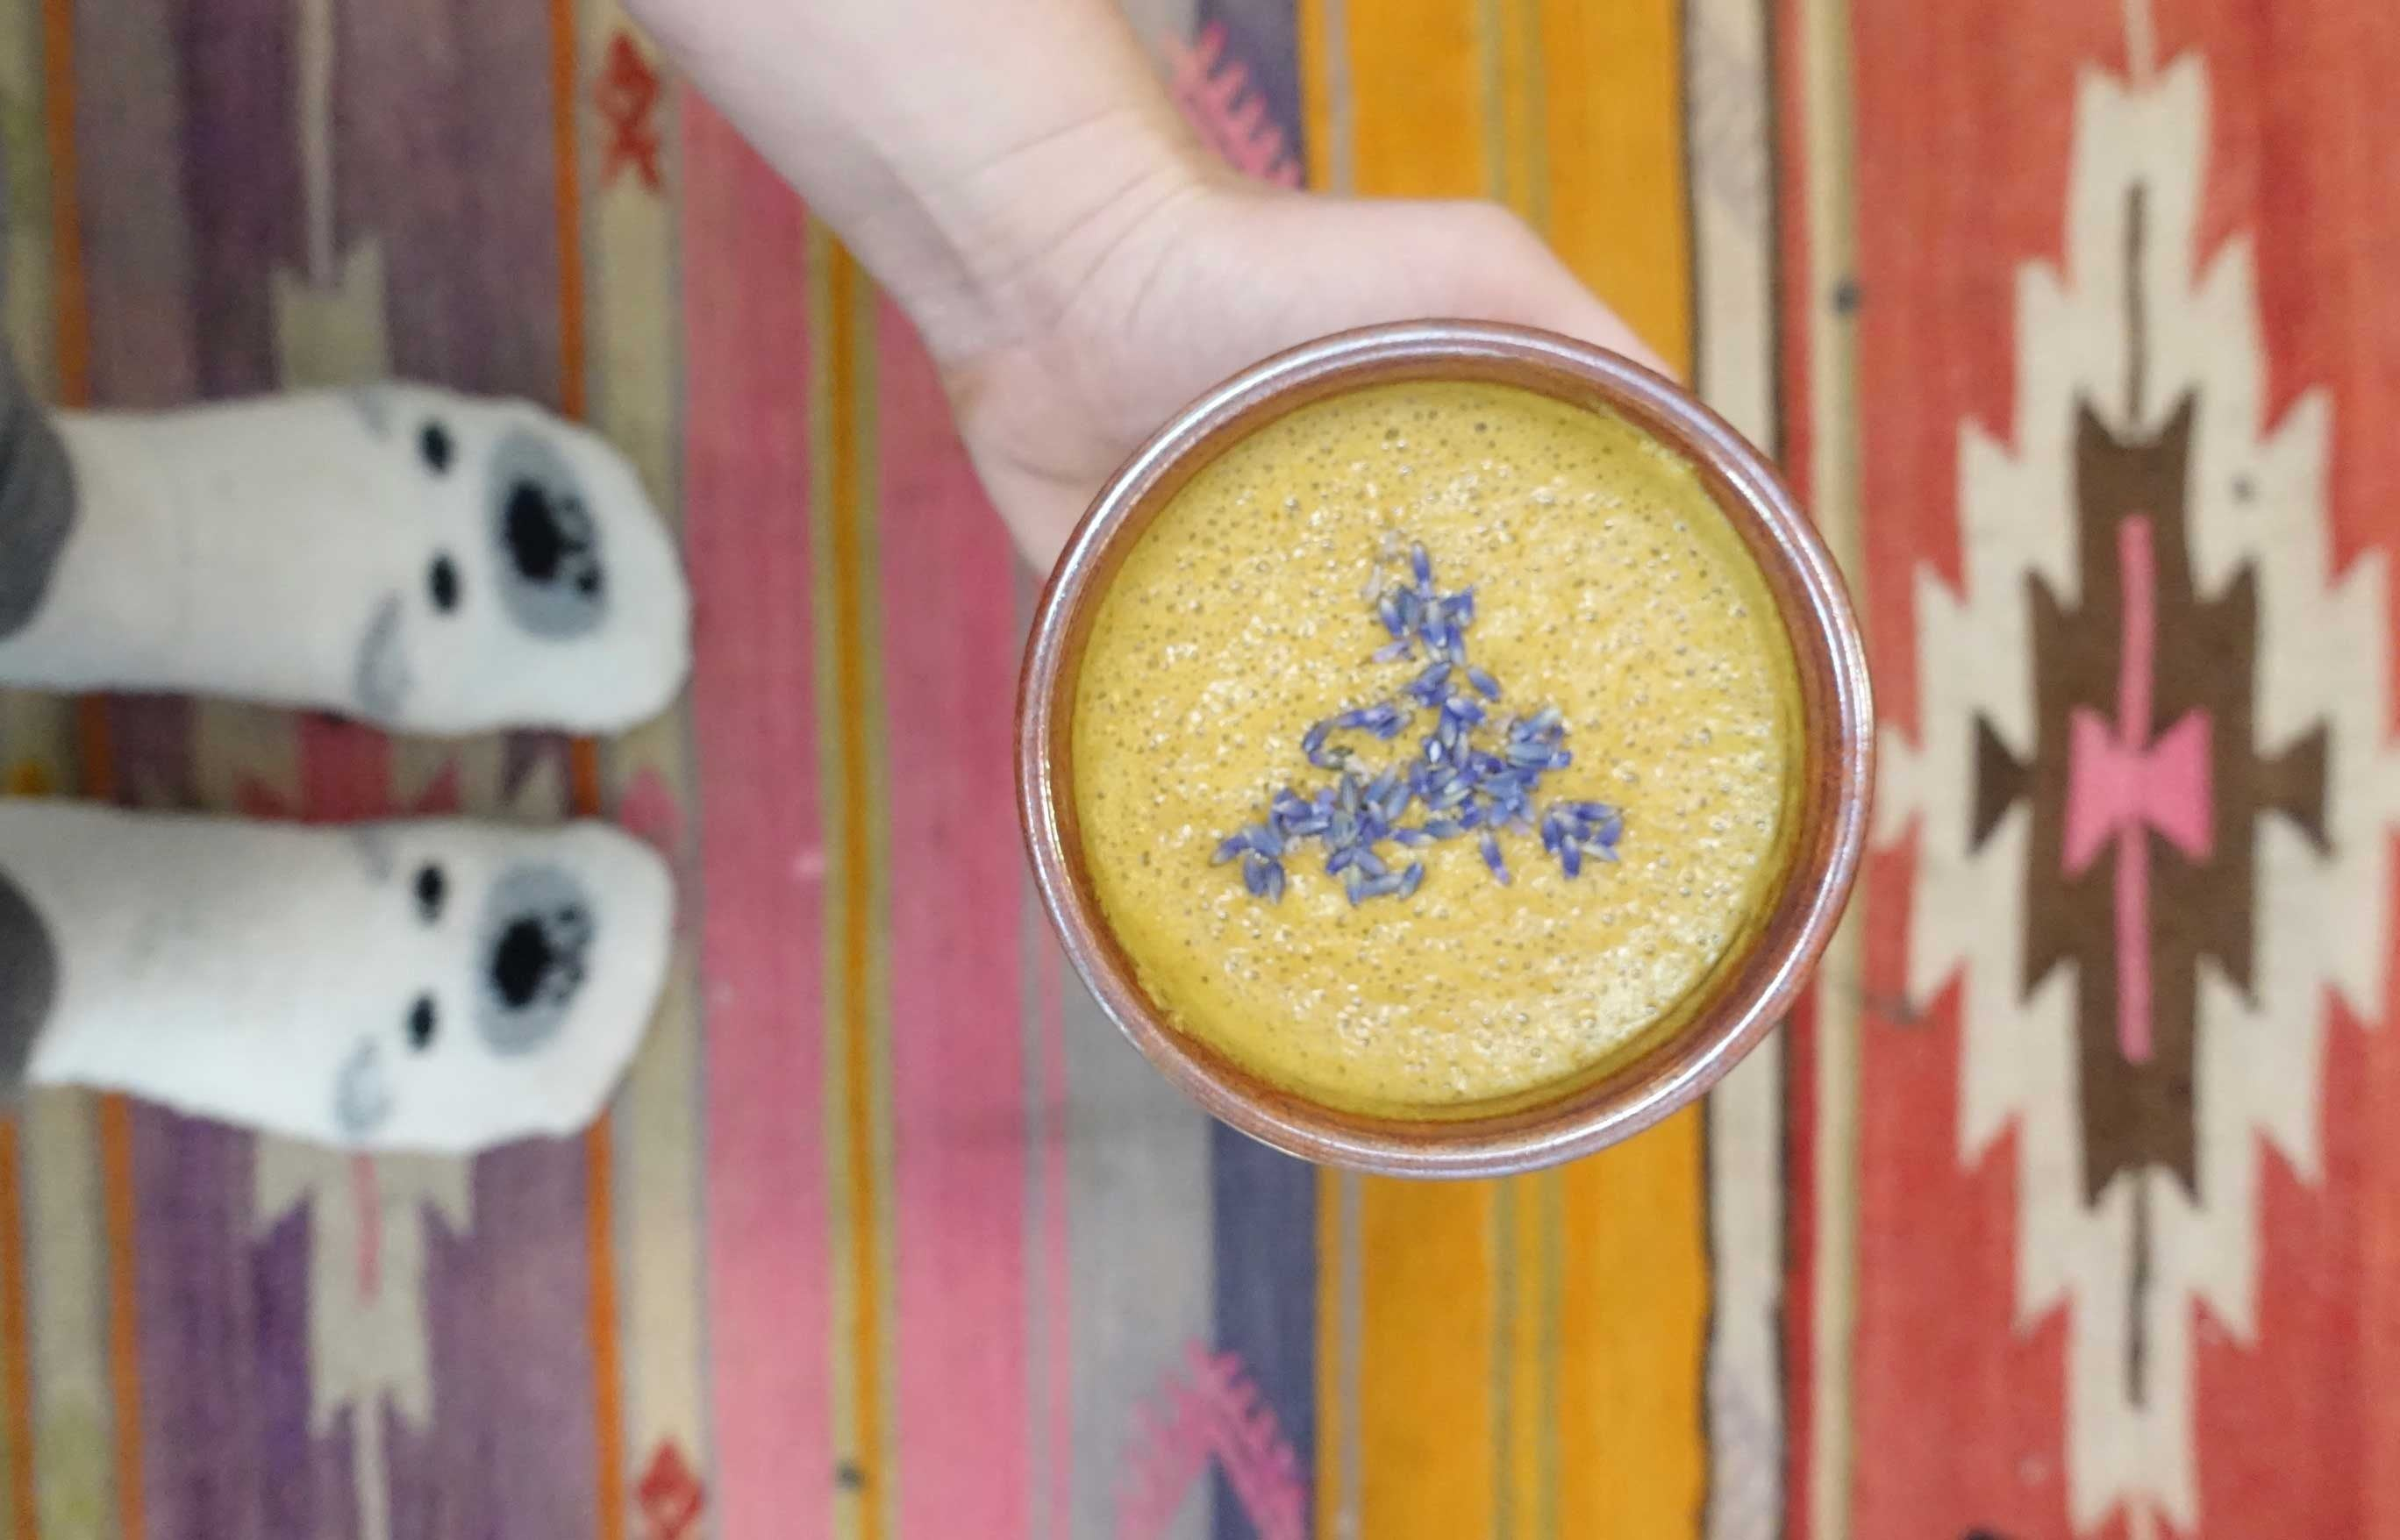 The Turmeric Latte You Need To Try